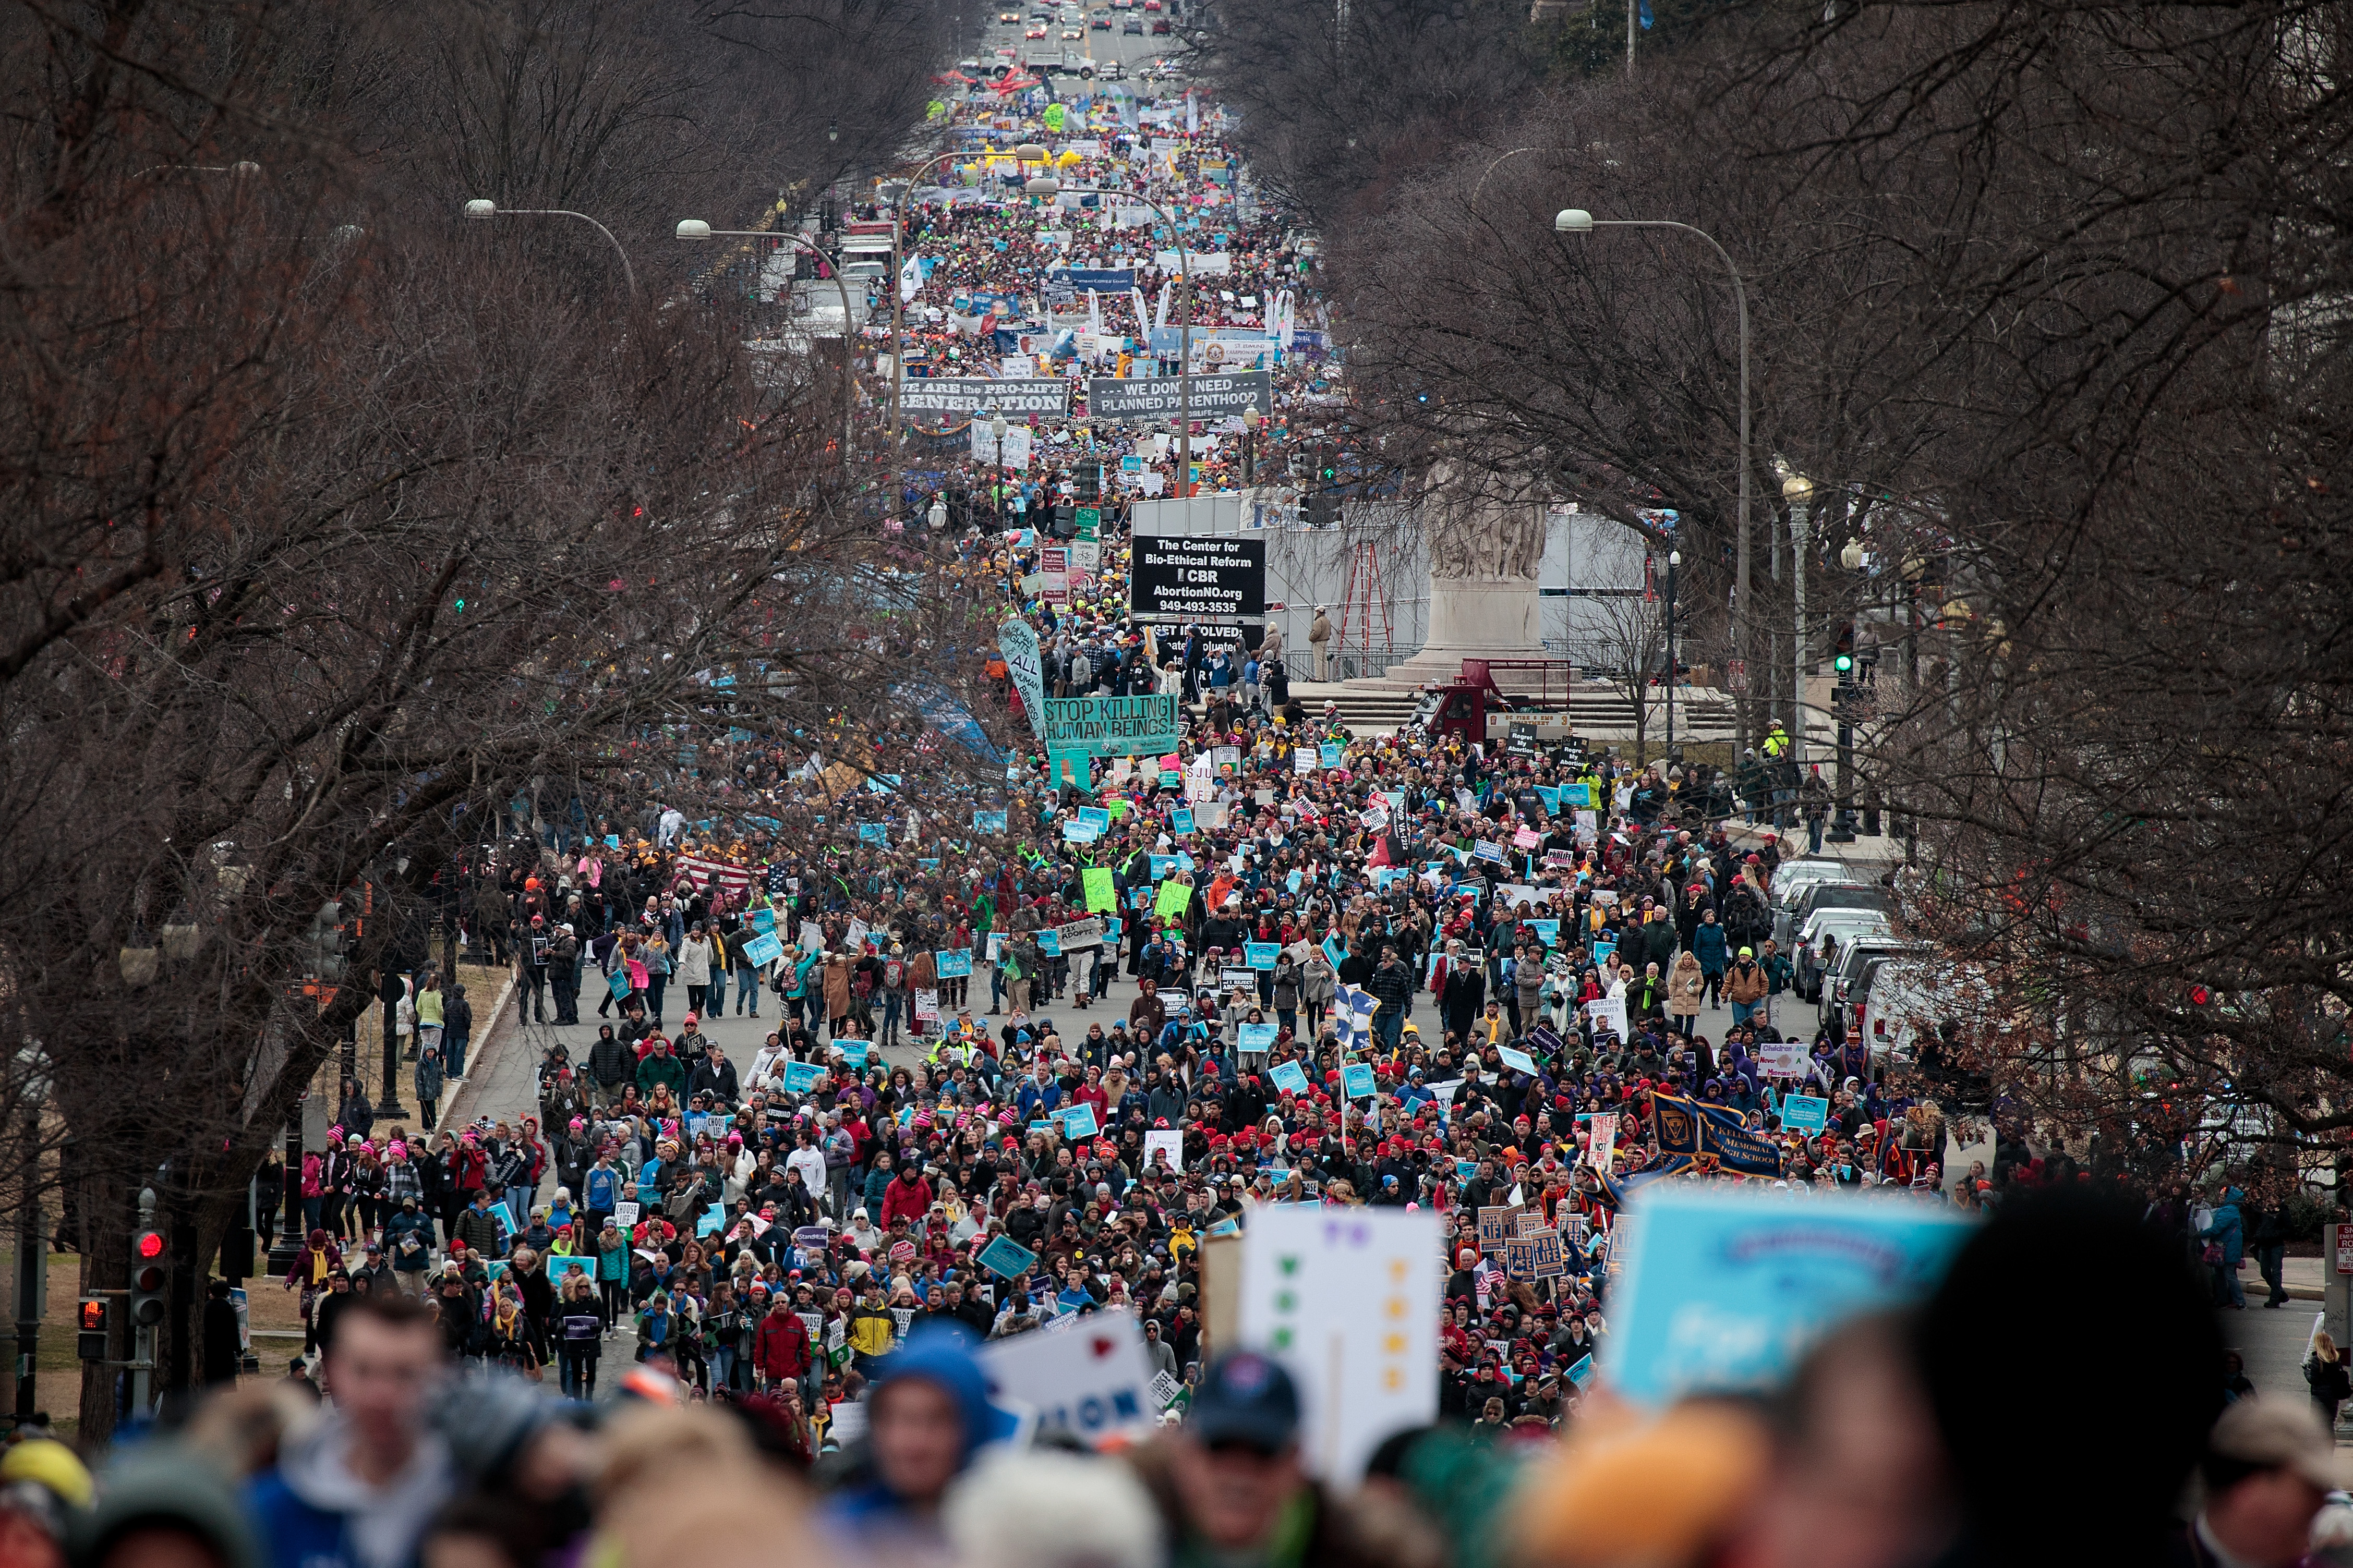 WASHINGTON, DC - JANUARY 27: Thousands of people march on Constitution Avenue during the March for Life, January 27, 2017 in Washington, DC. This year marks the 44th anniversary of the landmark Roe v. Wade Supreme Court case, which established a woman's constitutional right to an abortion. (Photo by Drew Angerer/Getty Images)